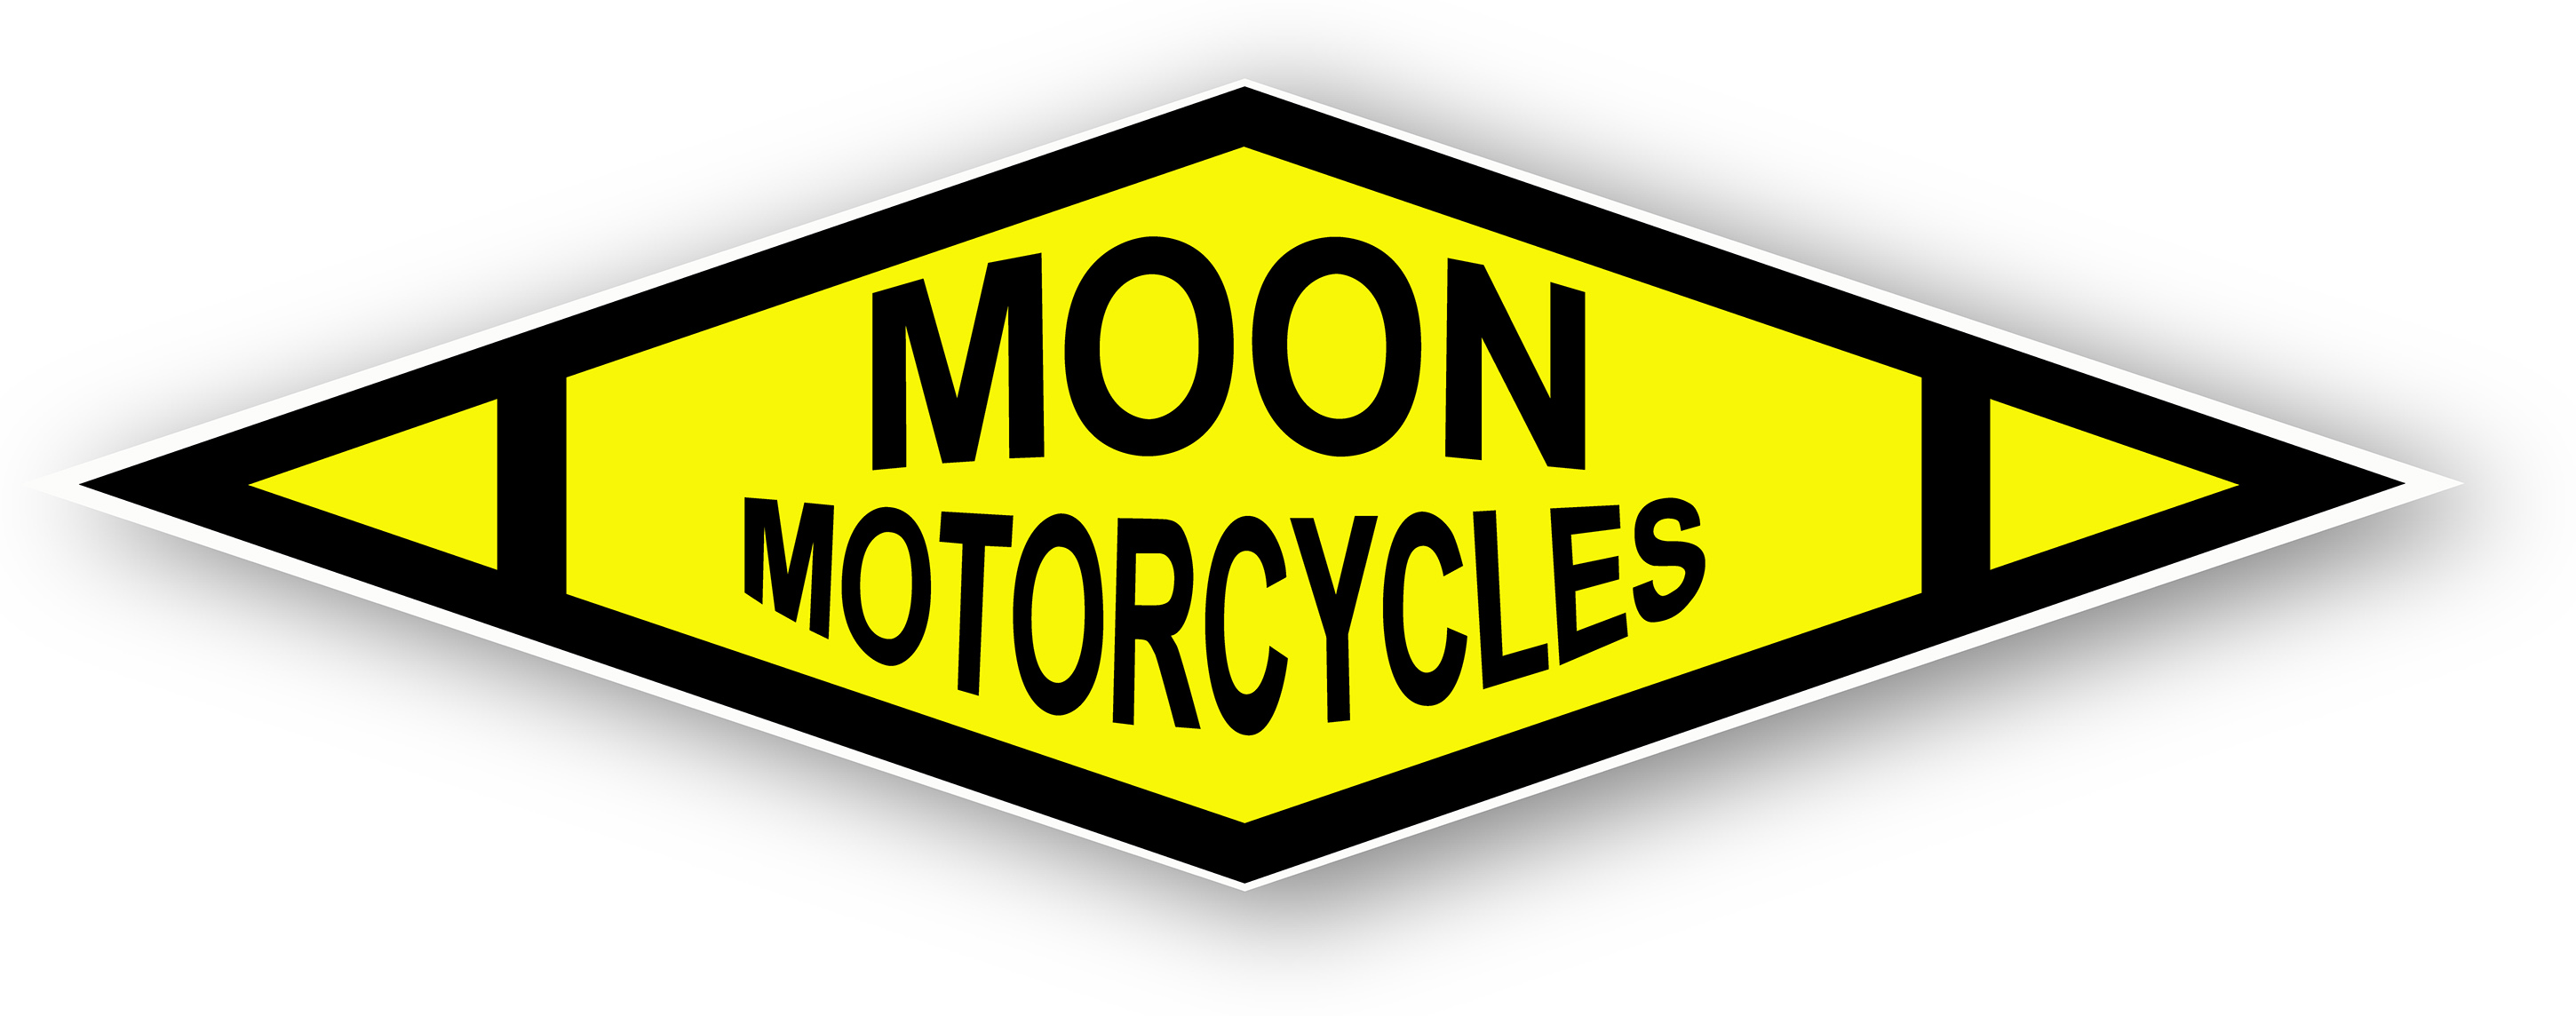 Moon Motorcycles